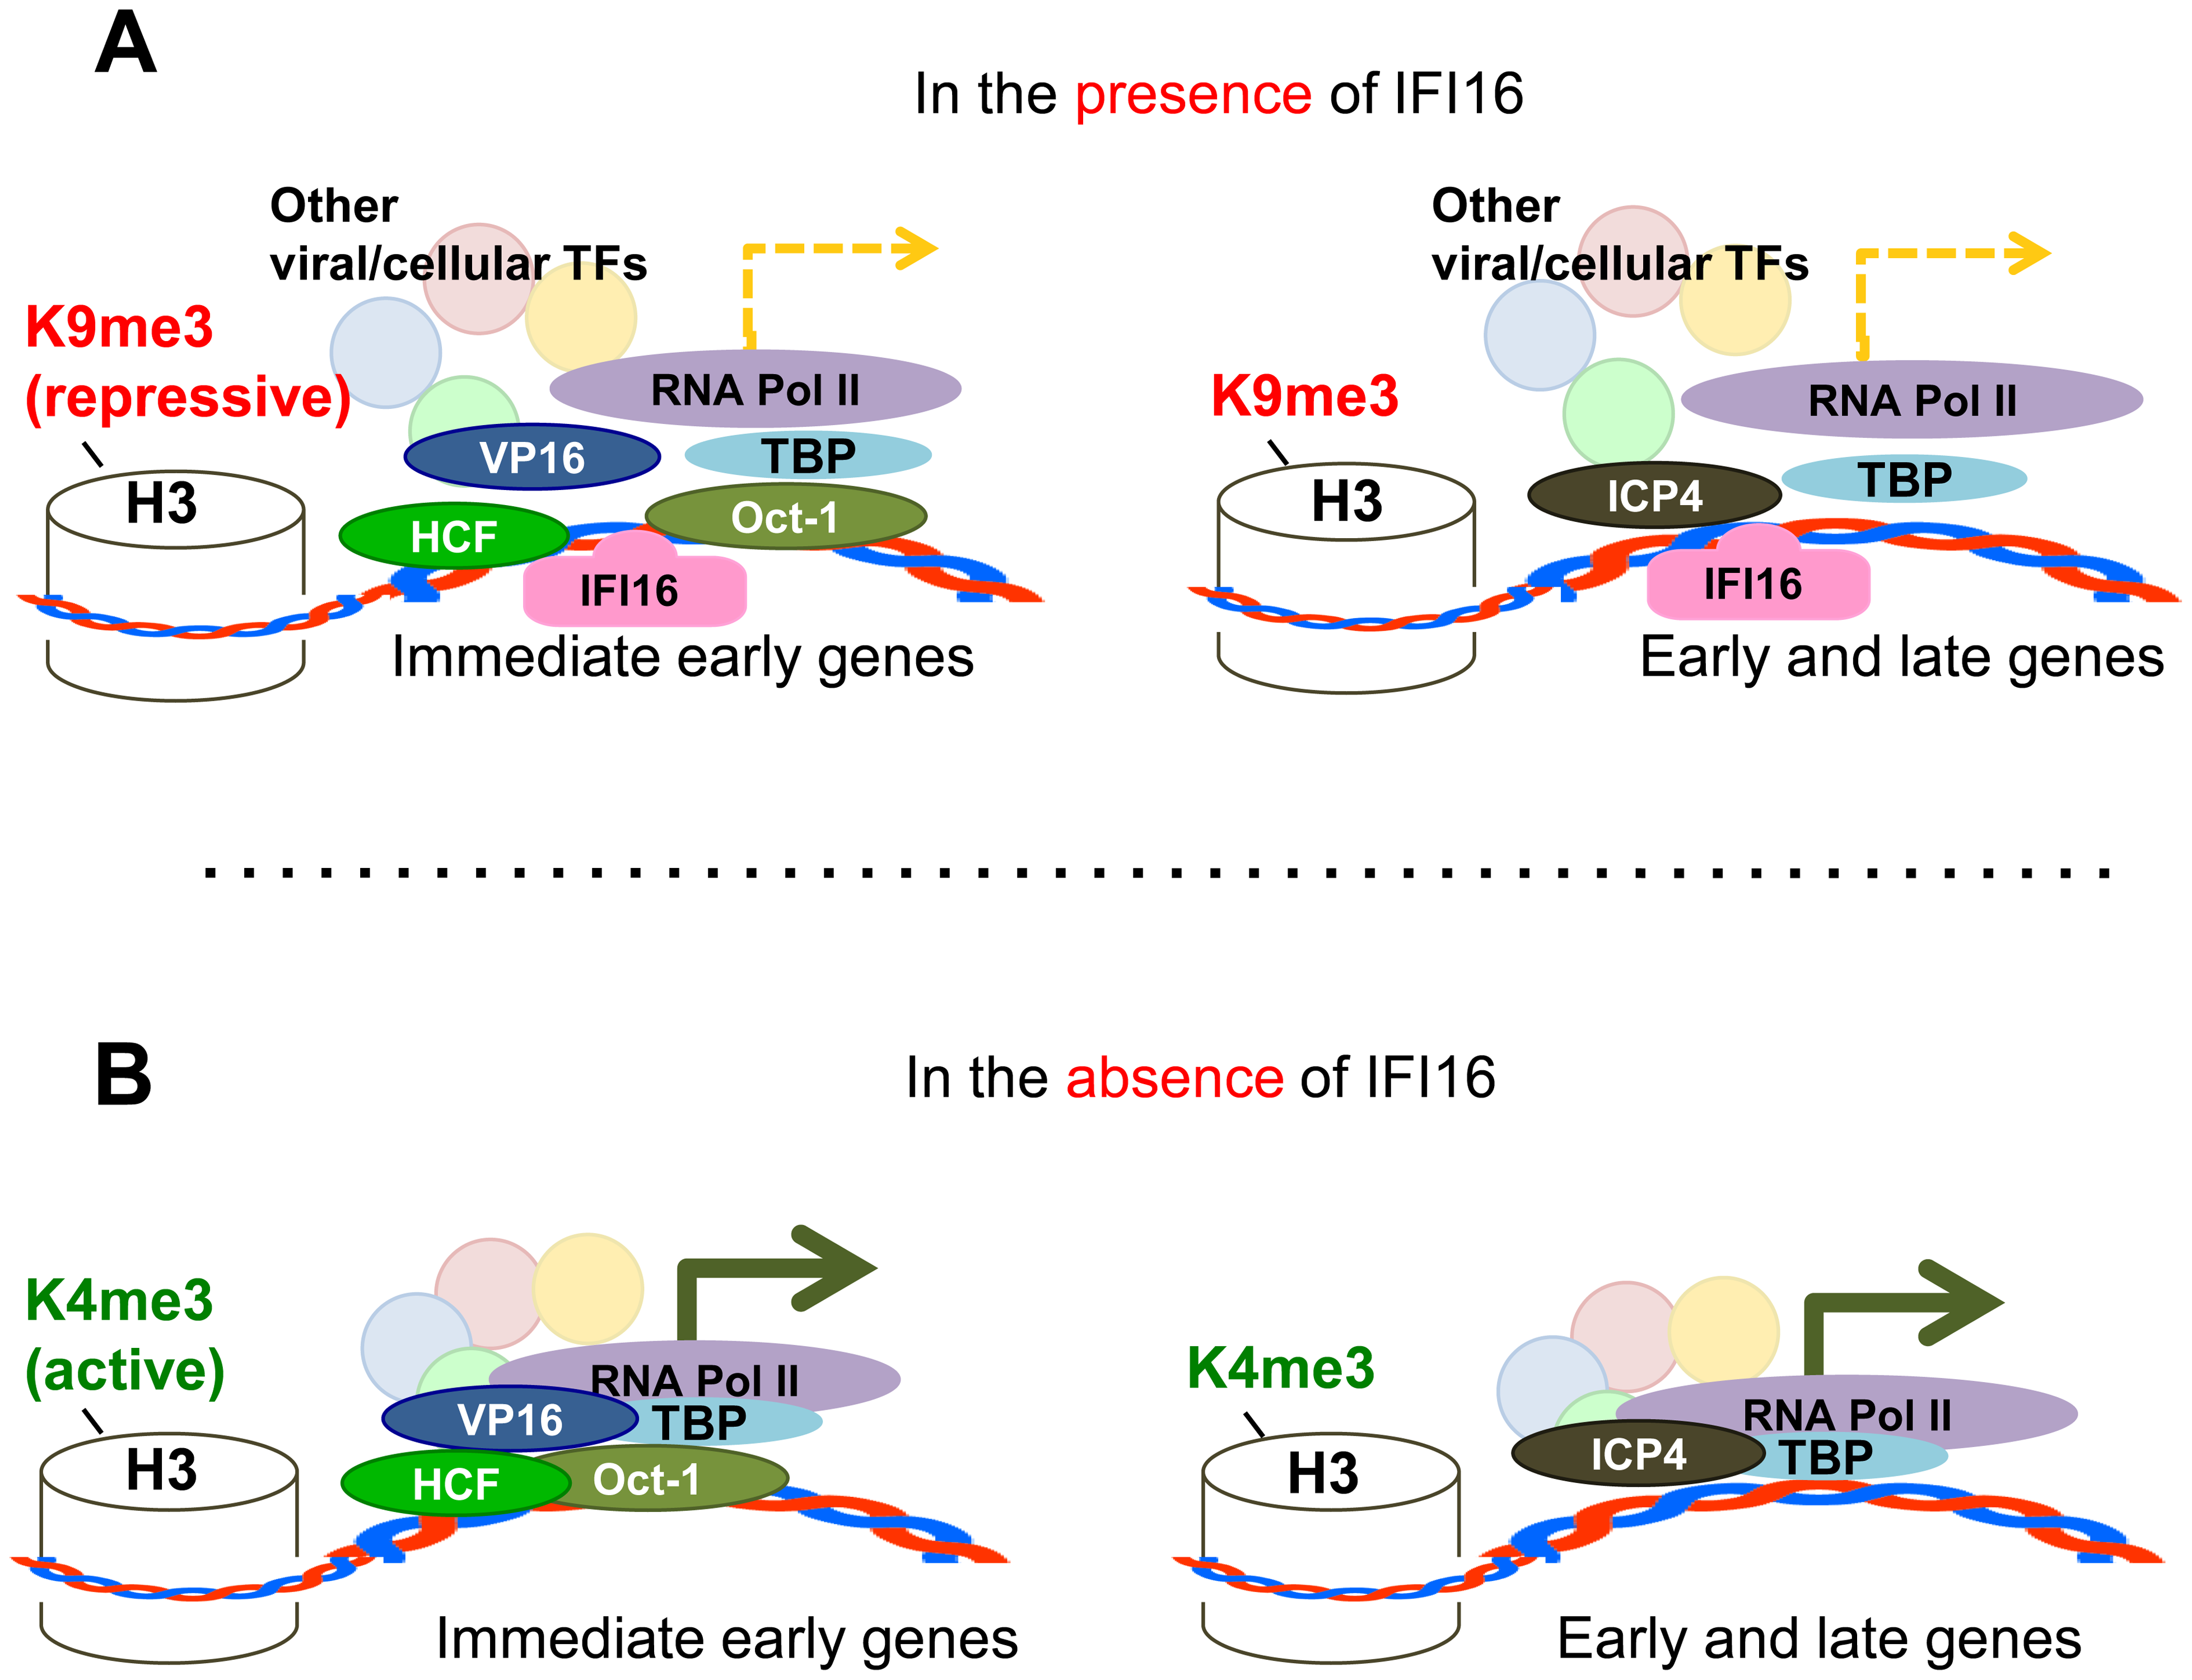 Schematic model: IFI16 inhibits HSV-1 gene expression by modulating histone modifications and binding to HSV-1 promoters, specifically preventing or decreasing the association of transcription factors at viral promoters.